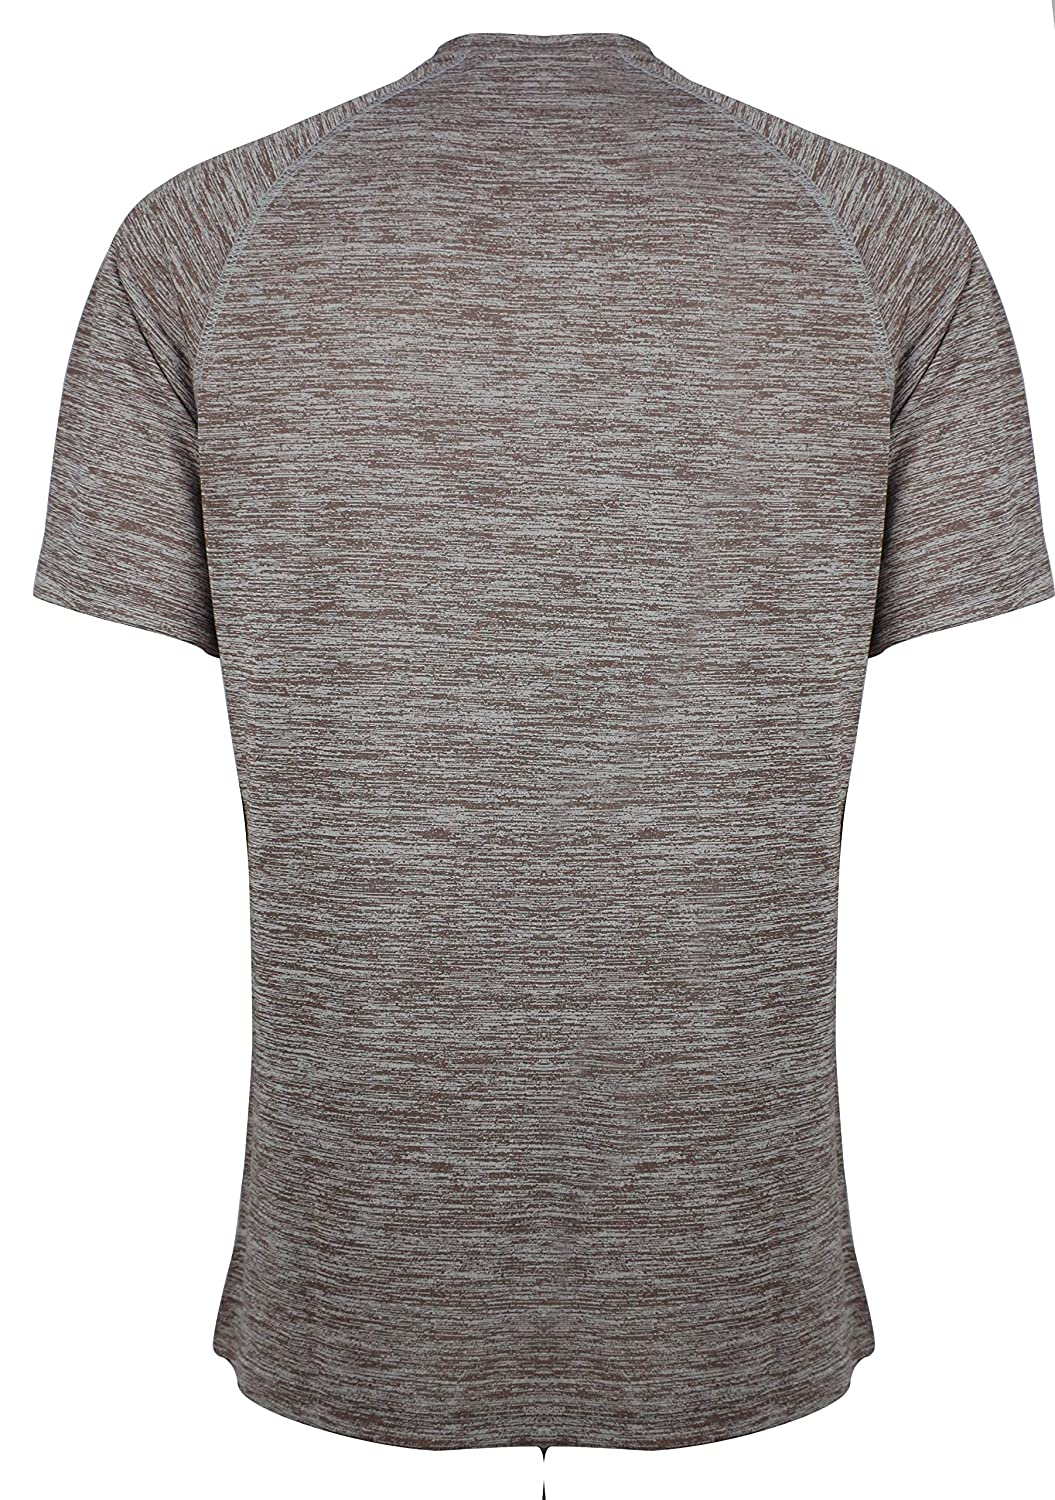 Mens Short Sleeve Henley T-Shirts Sports Dry Fit Performance Shirts for Men